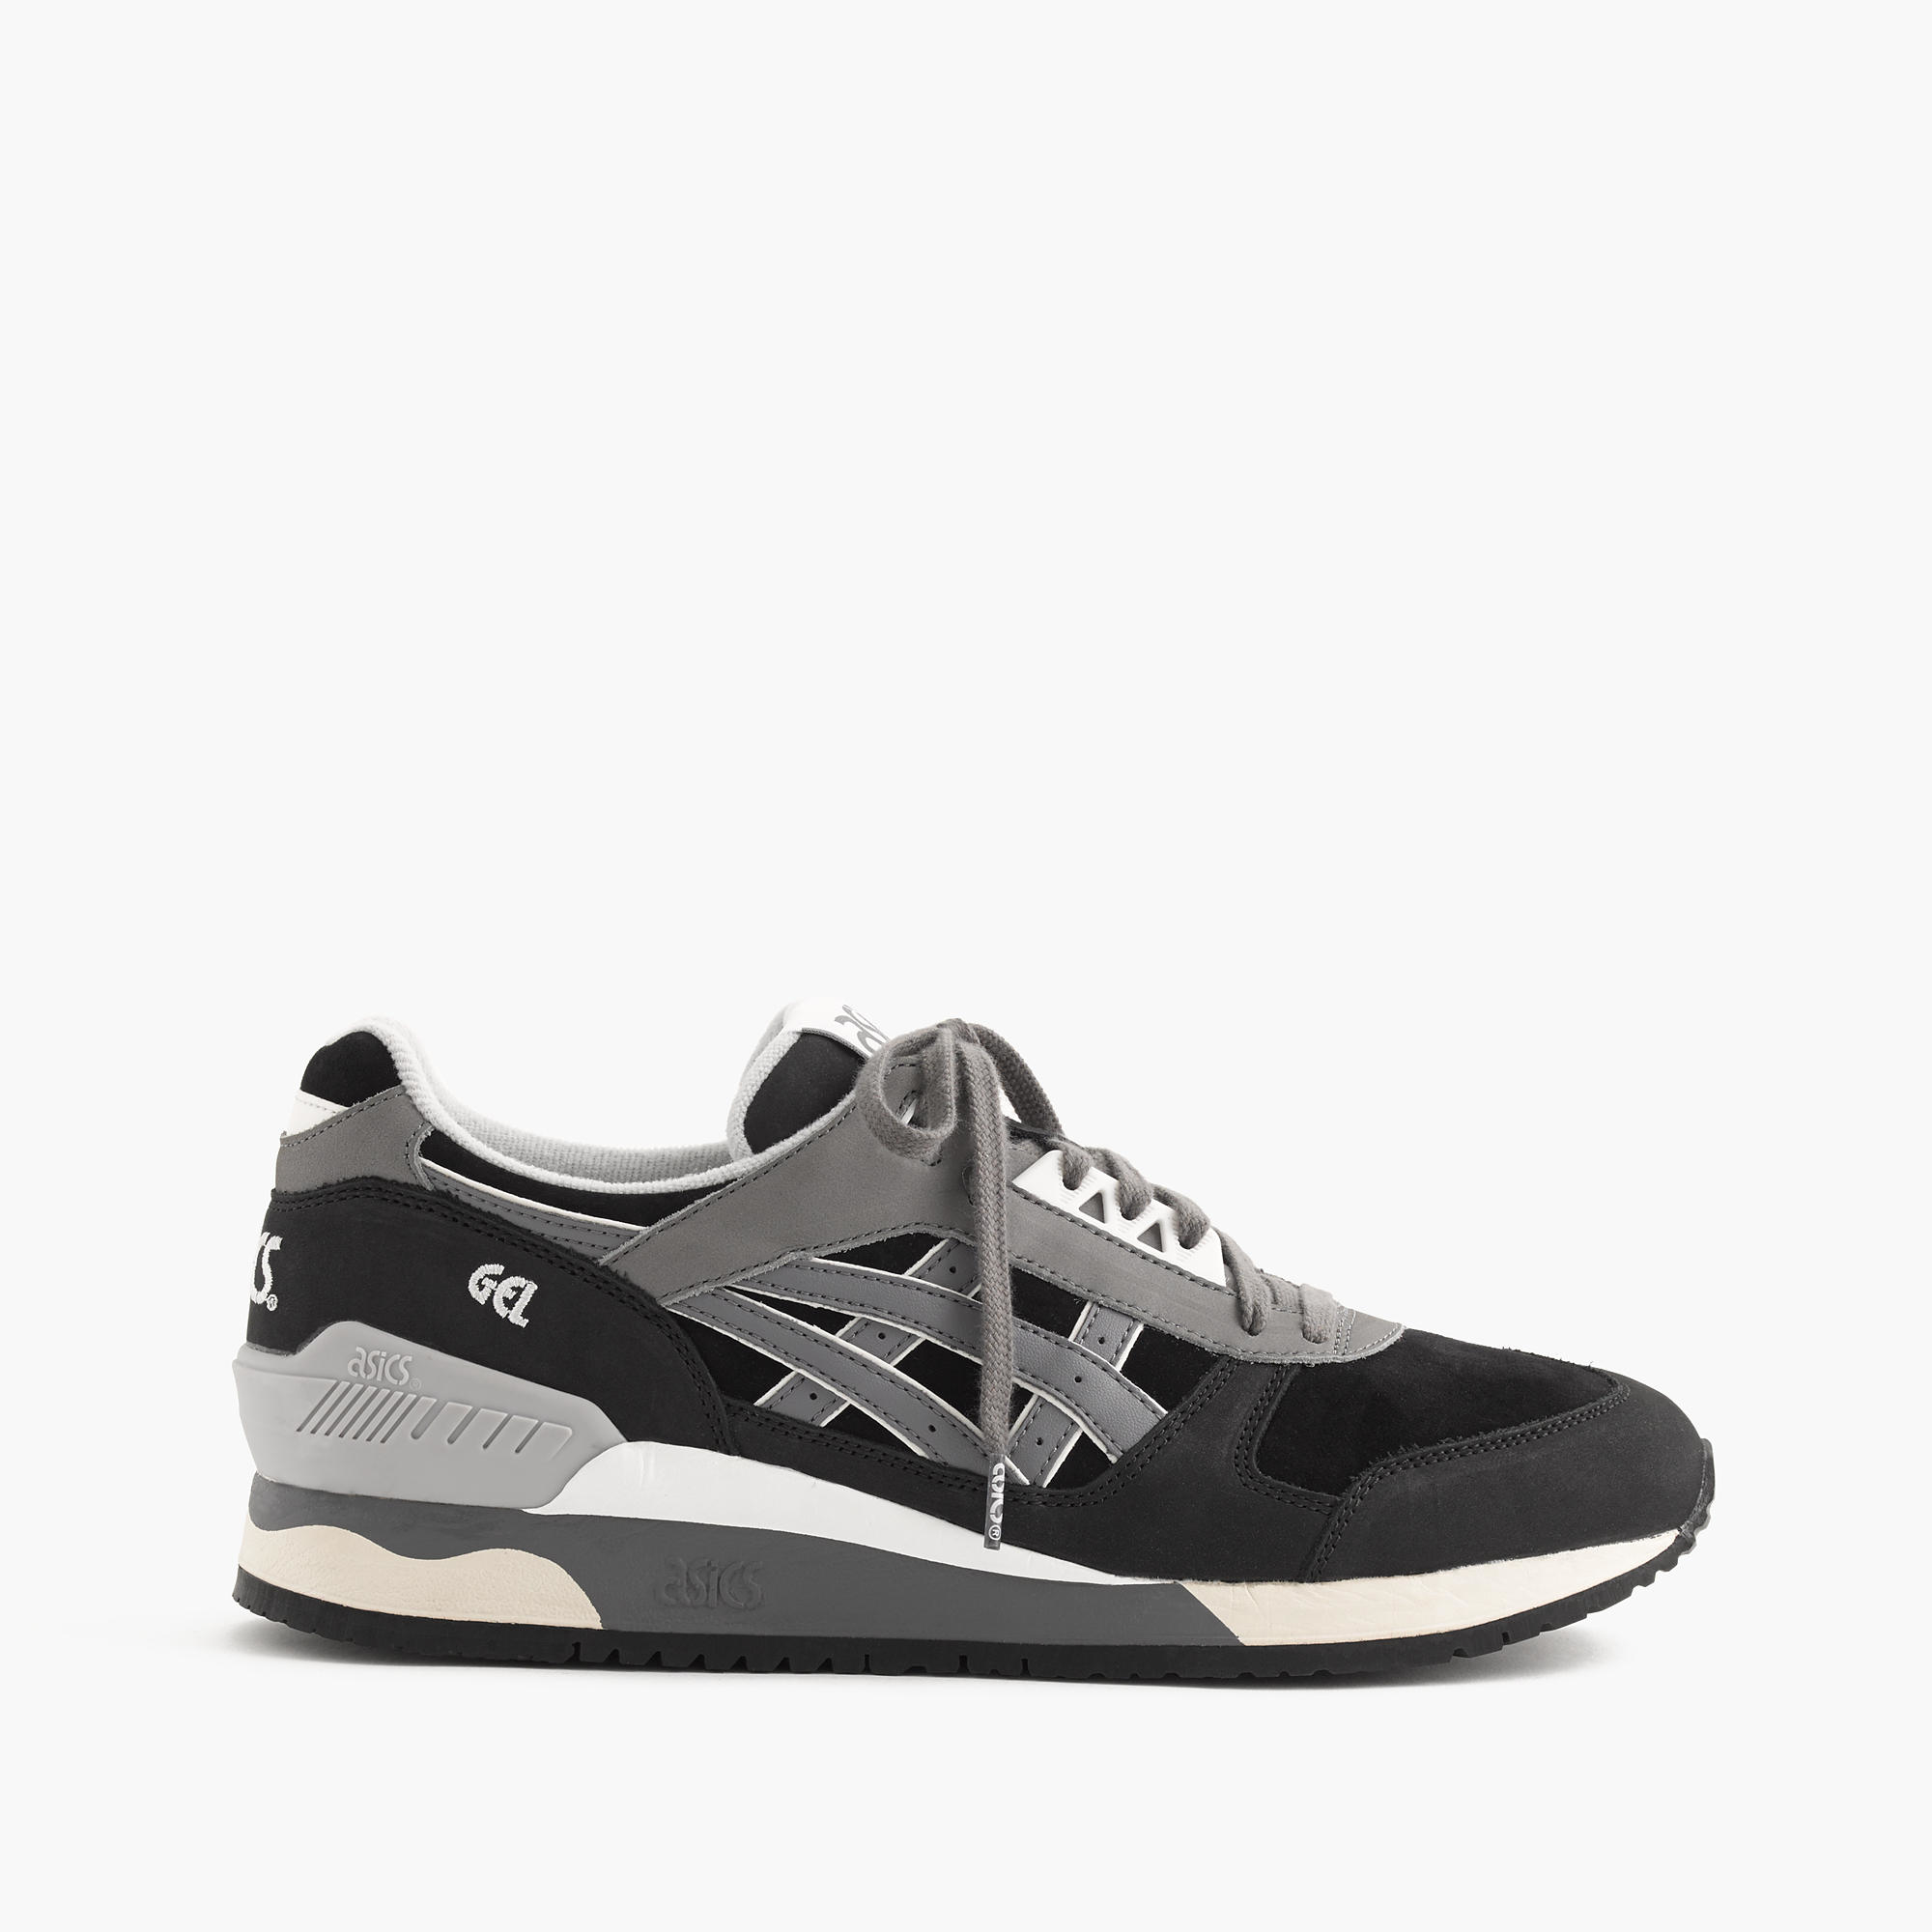 asics gel respector sneakers in black for men lyst. Black Bedroom Furniture Sets. Home Design Ideas